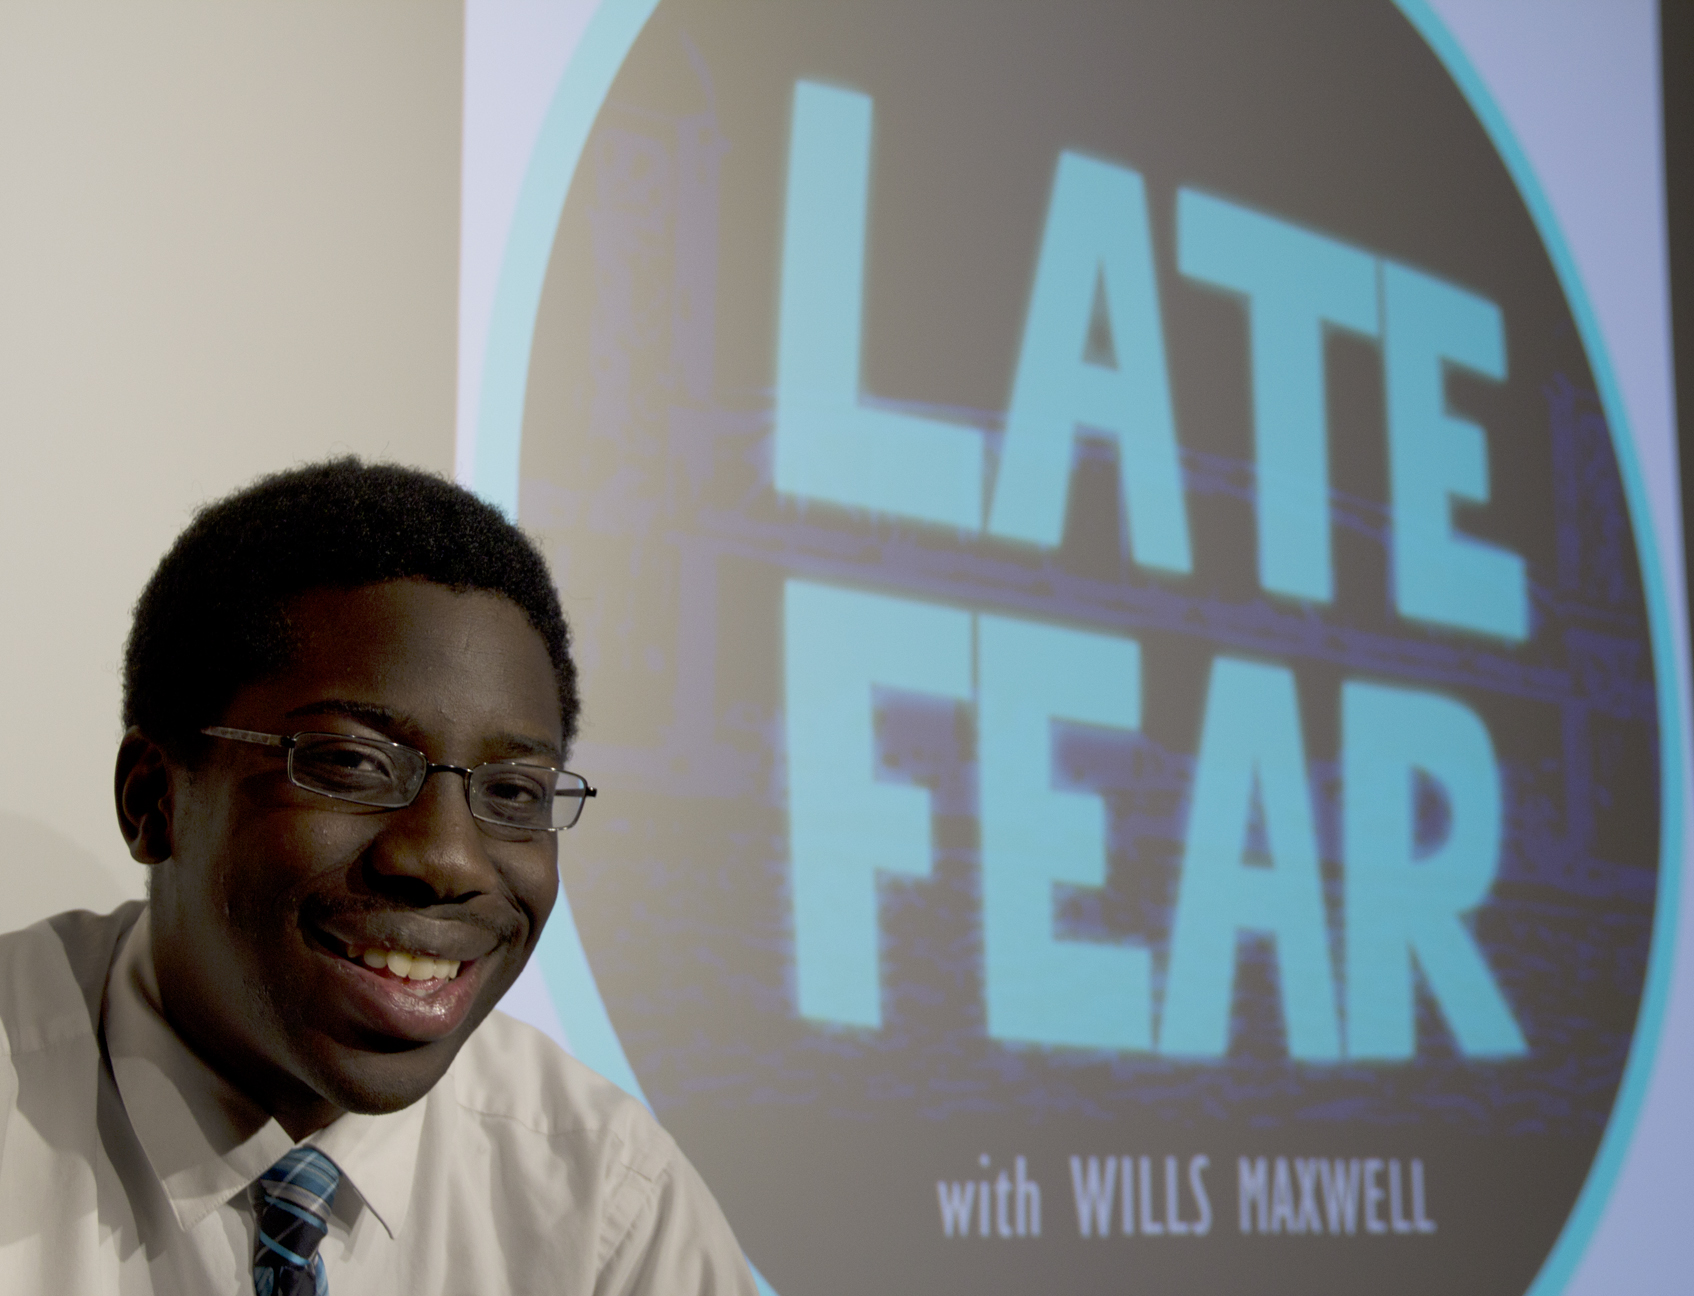 Late Fear with Wills Maxwell @ TheatreNOW | Wilmington | North Carolina | United States